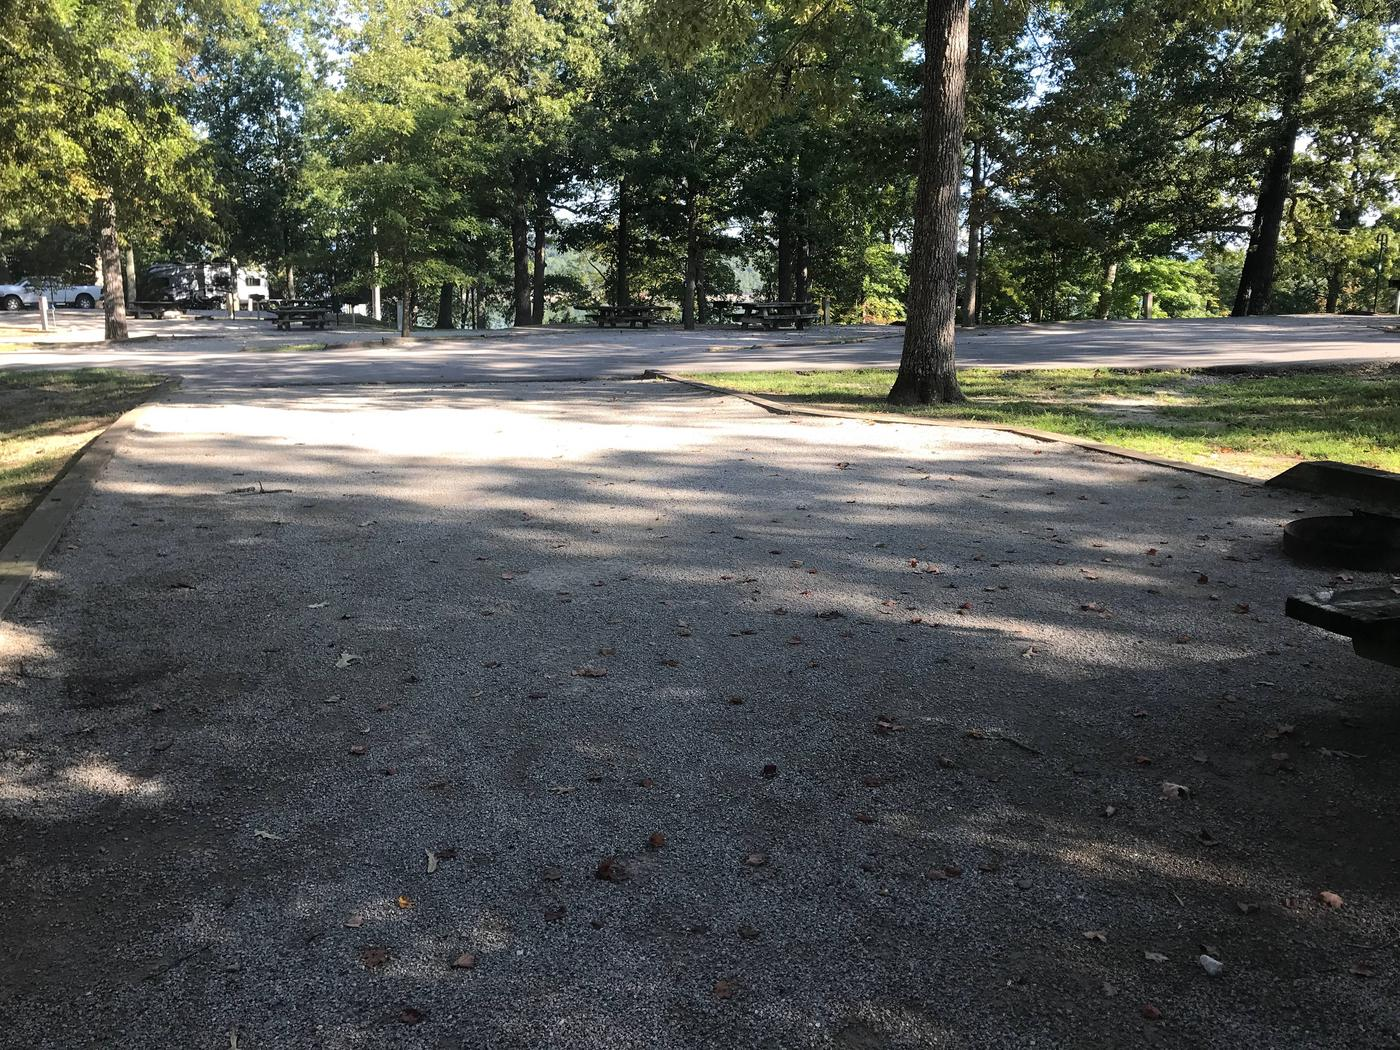 WILLOW GROVE CAMPGROUND SITE #39 RV LOCATIONWILLOW GROVE CAMPGROUND SITE #39